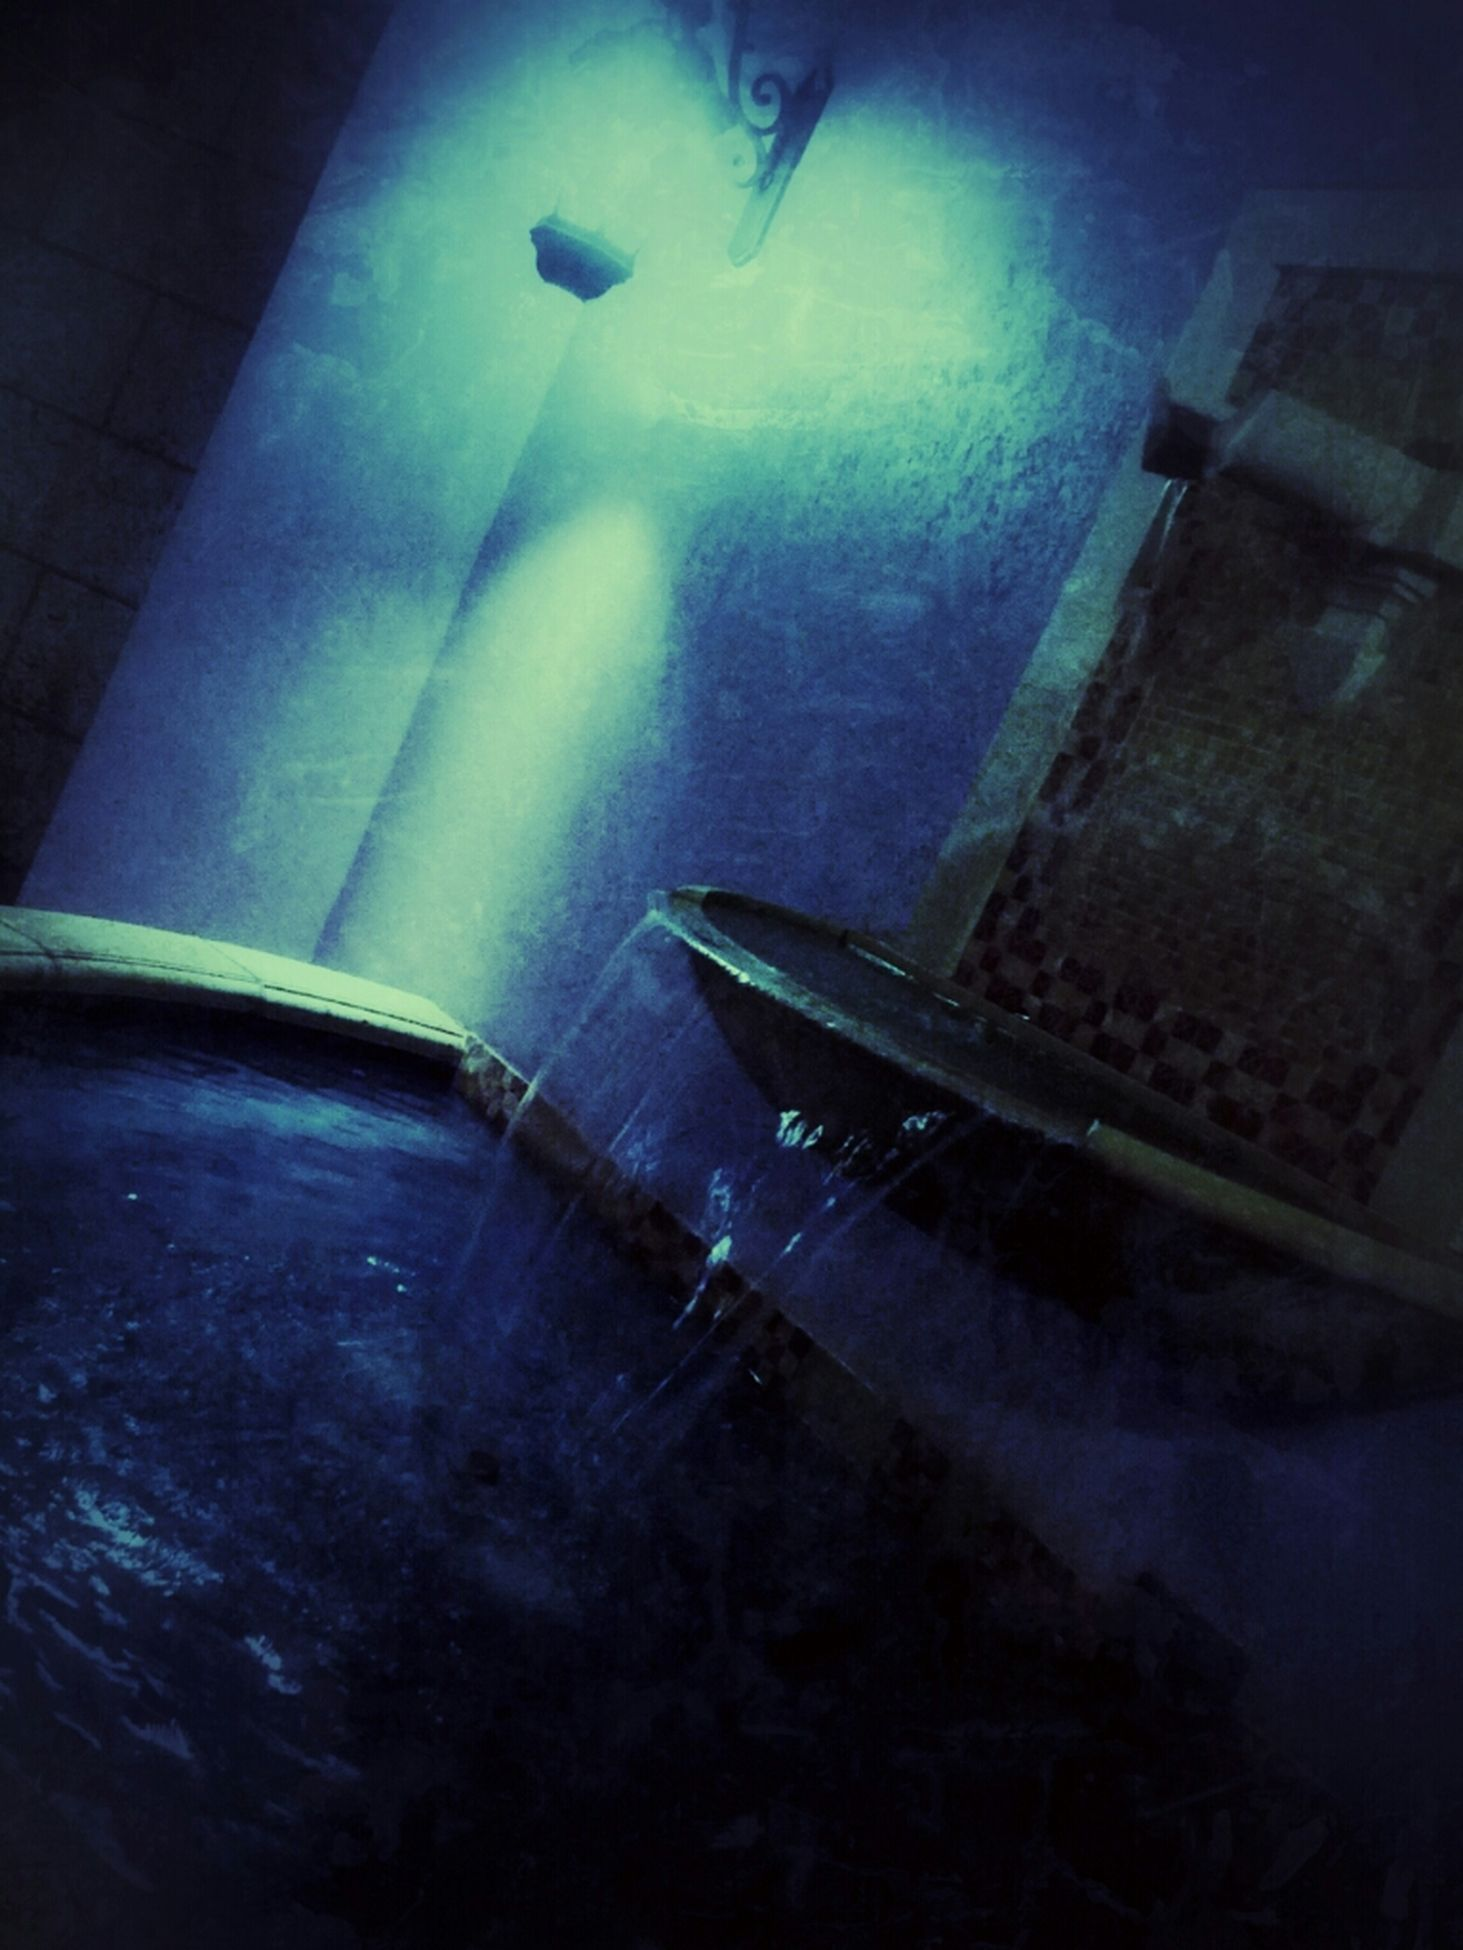 Azul ;) Urban Exploration Water_collection EE_Daily: Blue Friday